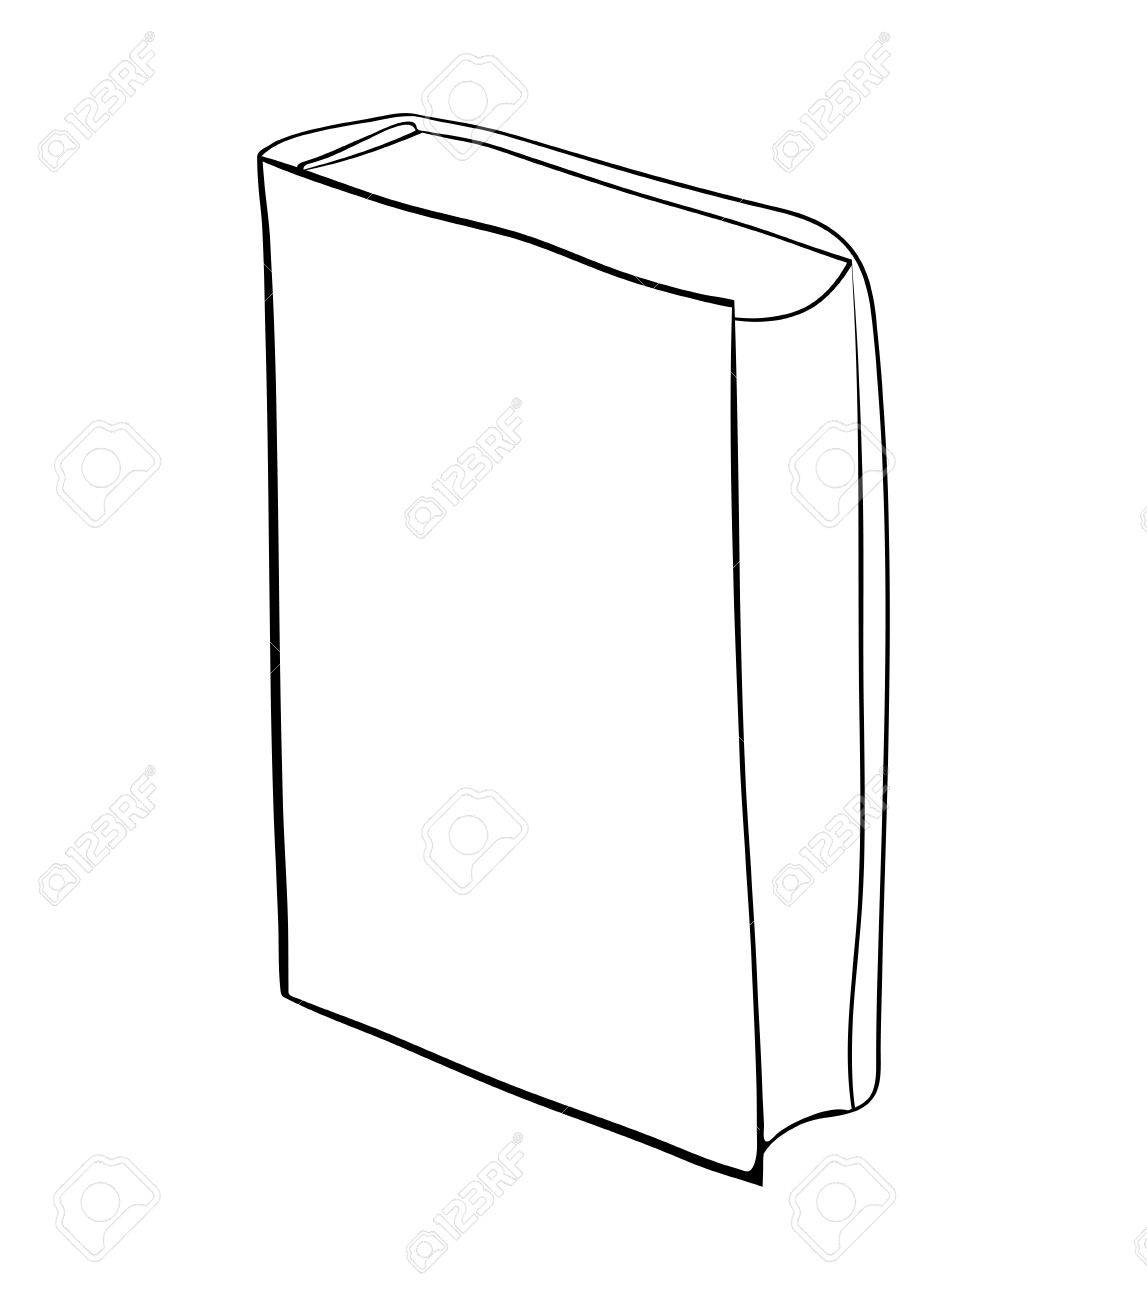 Livre Ferme Debout Dessin Anime Vecteur Symbole Icone Design Belle Illustration Isolee Sur Fond Blanc